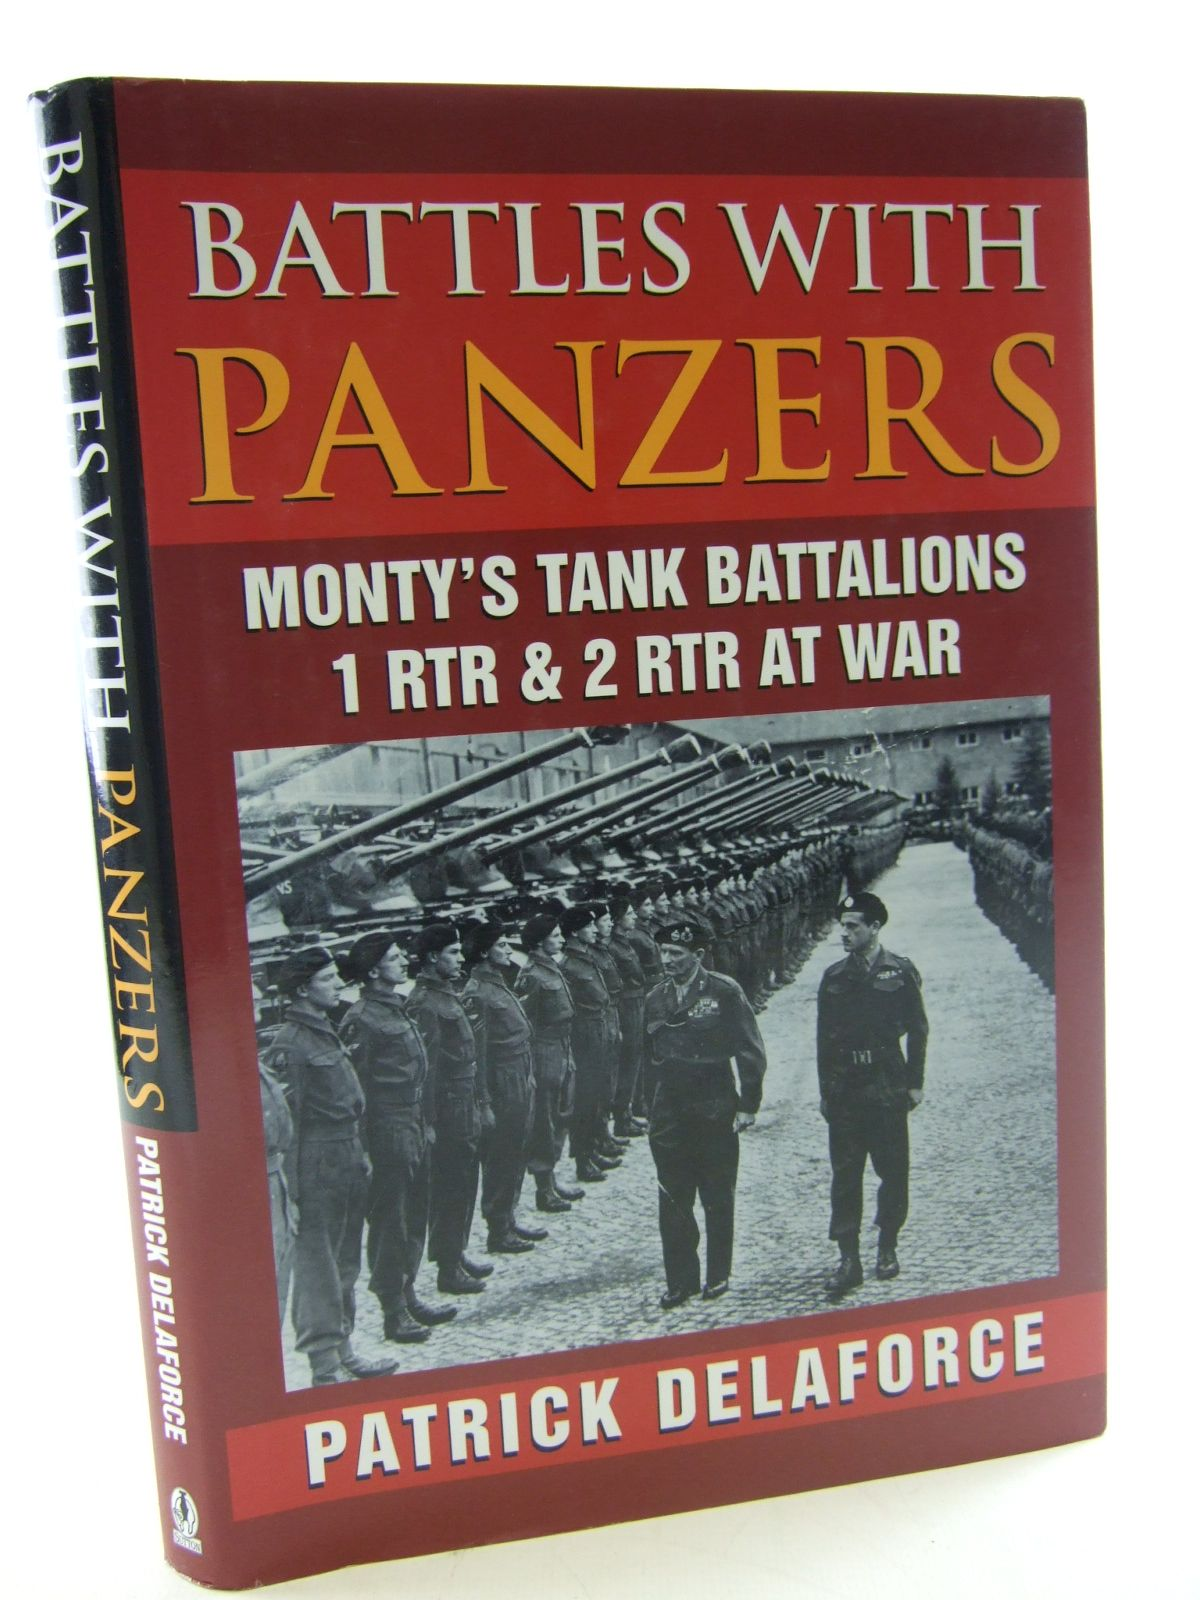 Photo of BATTLES WITH PANZERS MONTY'S TANK BATTALIONS 1RTR & 2 RTR AT WAR written by Delaforce, Patrick published by Sutton Publishing (STOCK CODE: 1805287)  for sale by Stella & Rose's Books